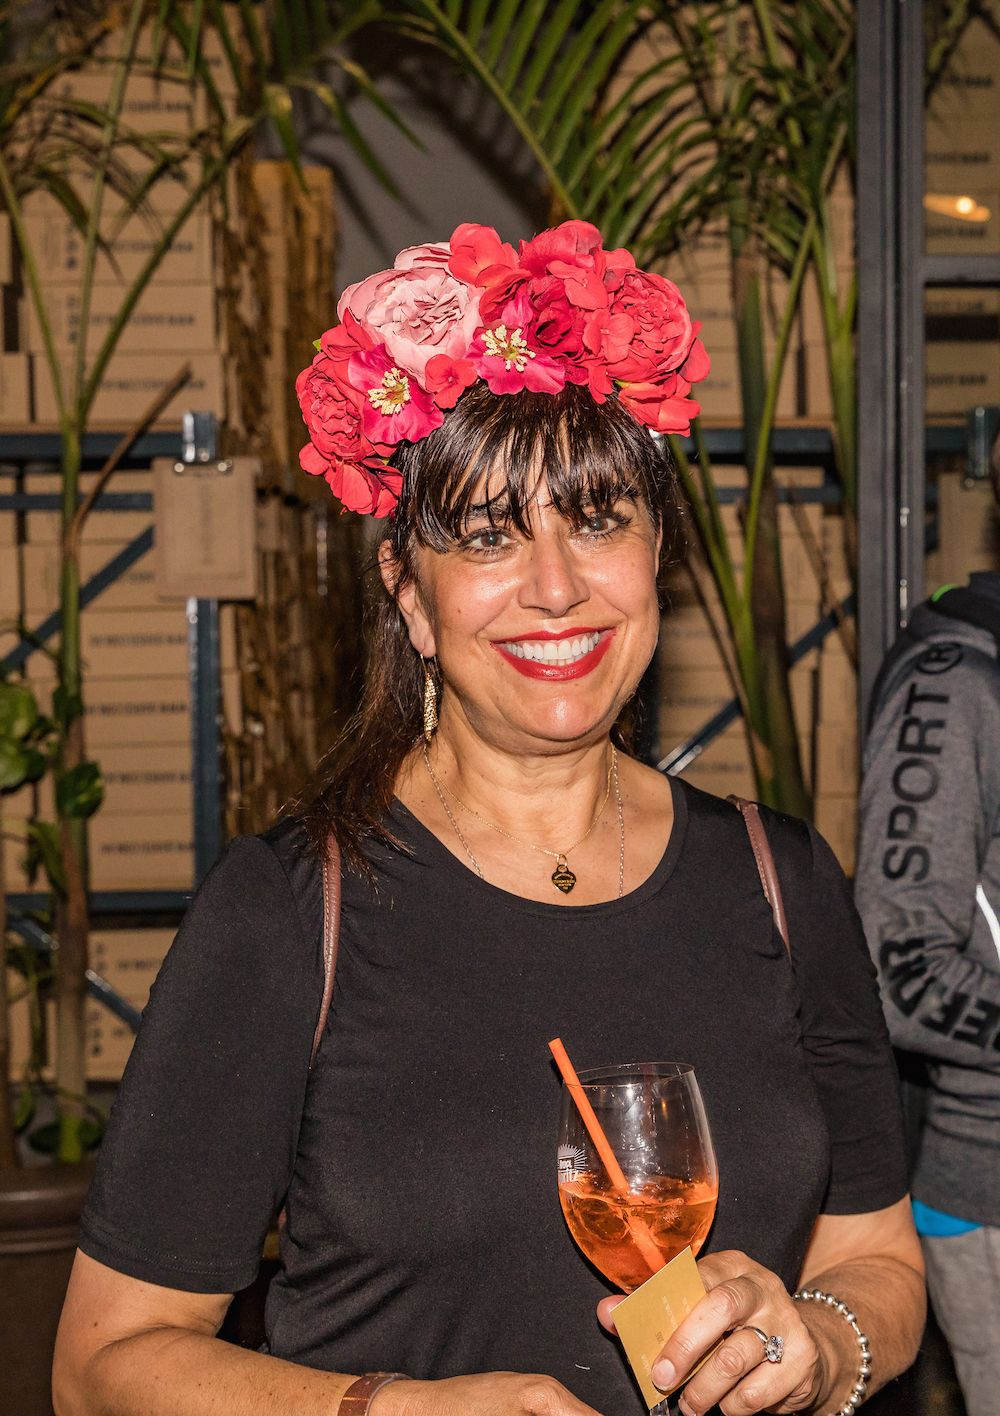 Bared_Footwear_Milliners_In_Manchester_Lane_Melbourne_CBD_Event_Flower_Millinery